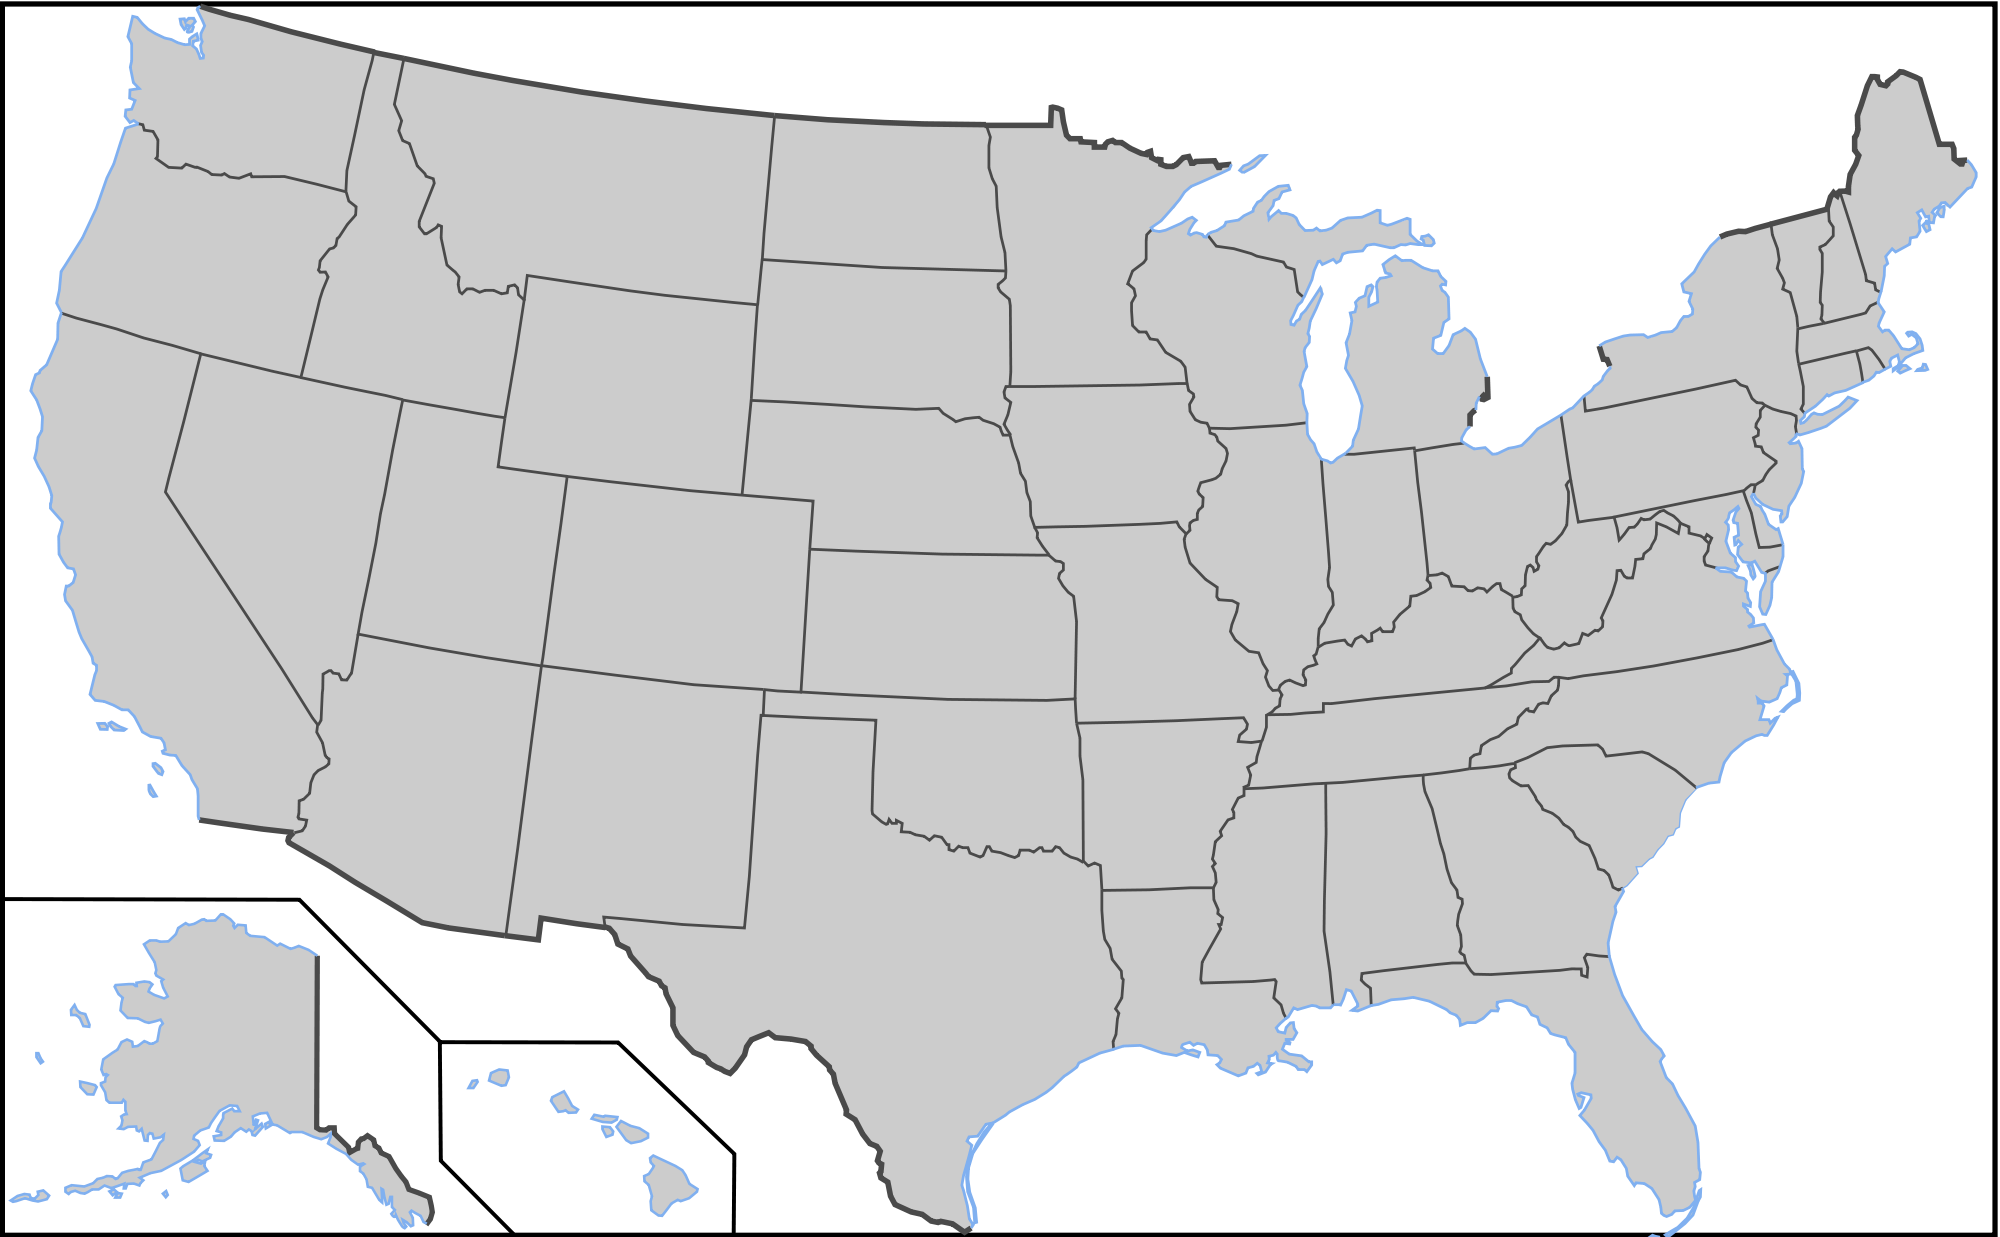 Clipart map map road us. Blank gray google maps